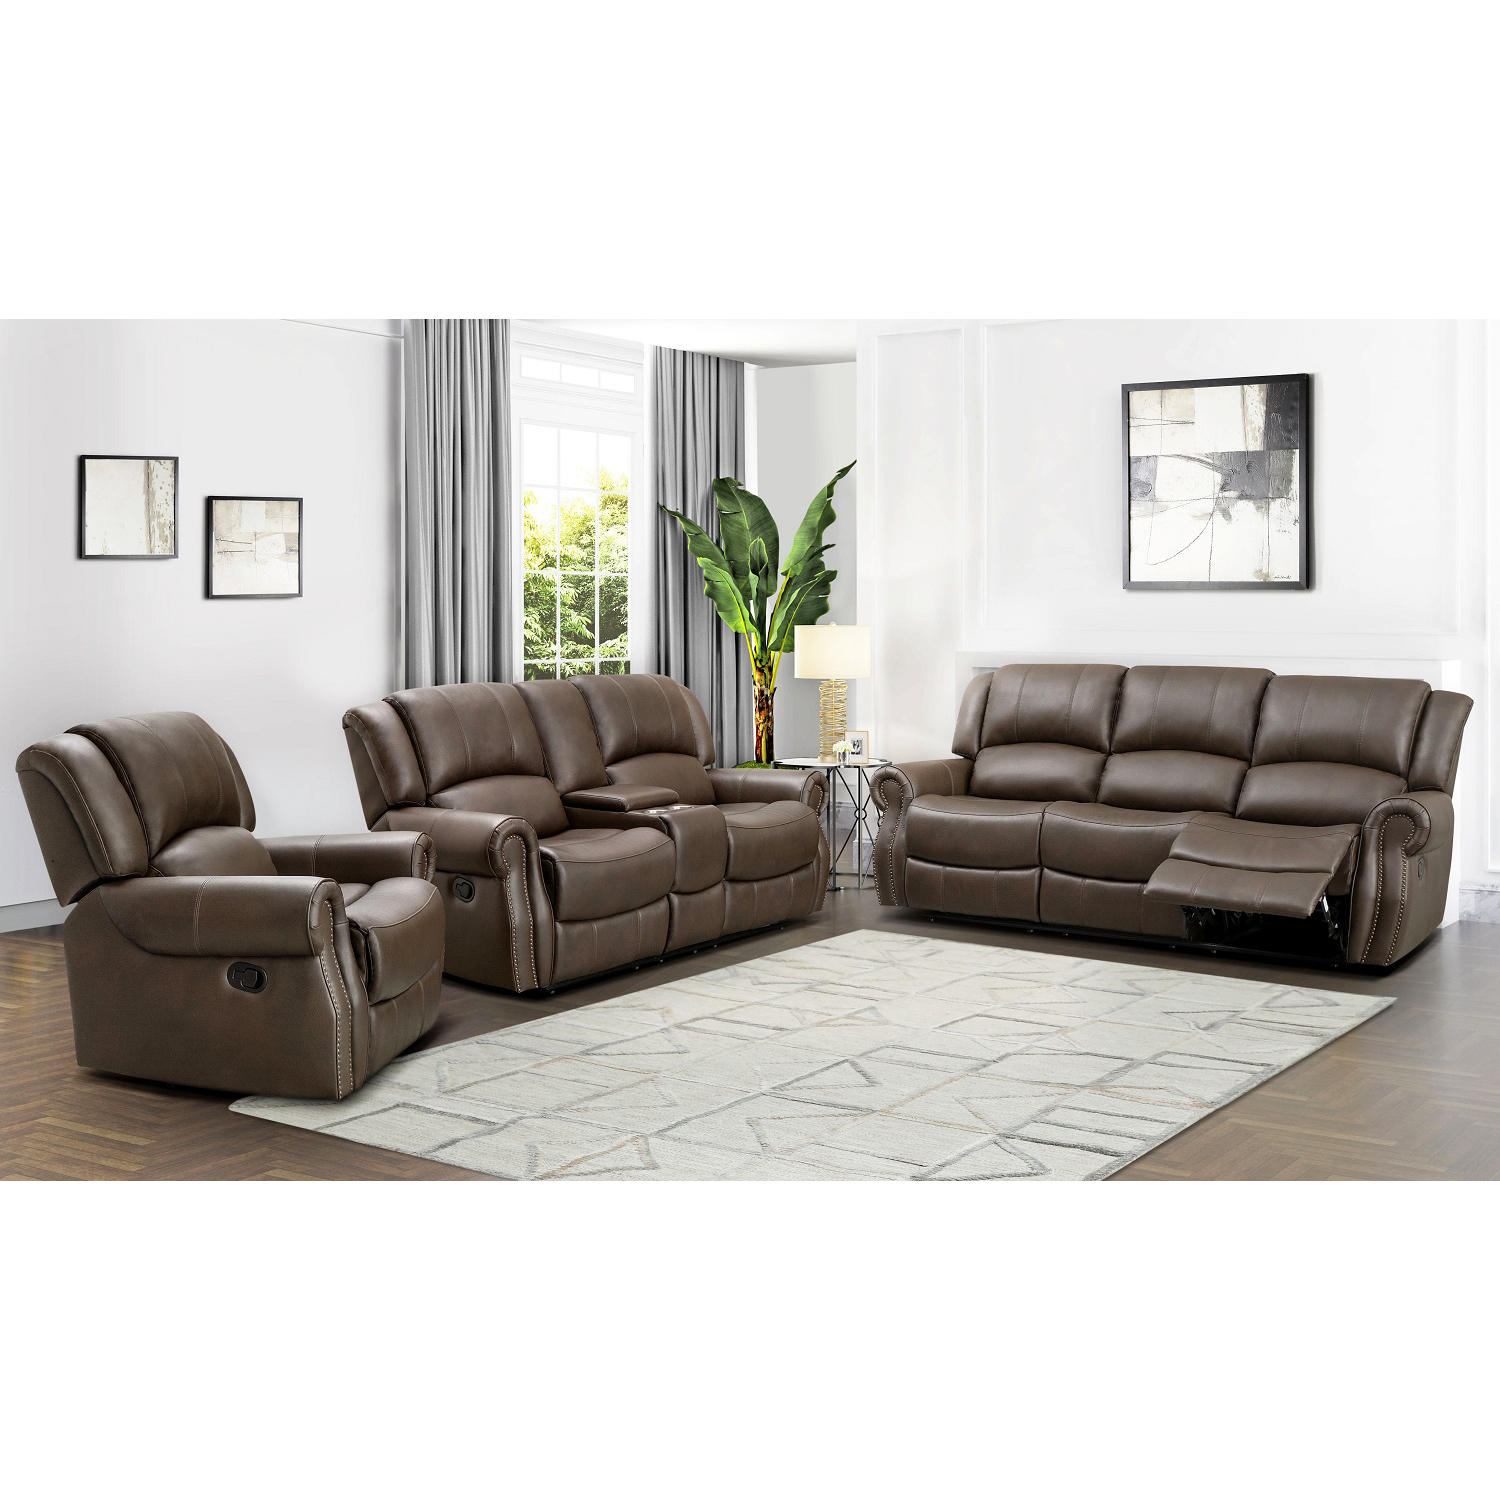 Harvest Reclining Sofa Loveseat and Chair Set